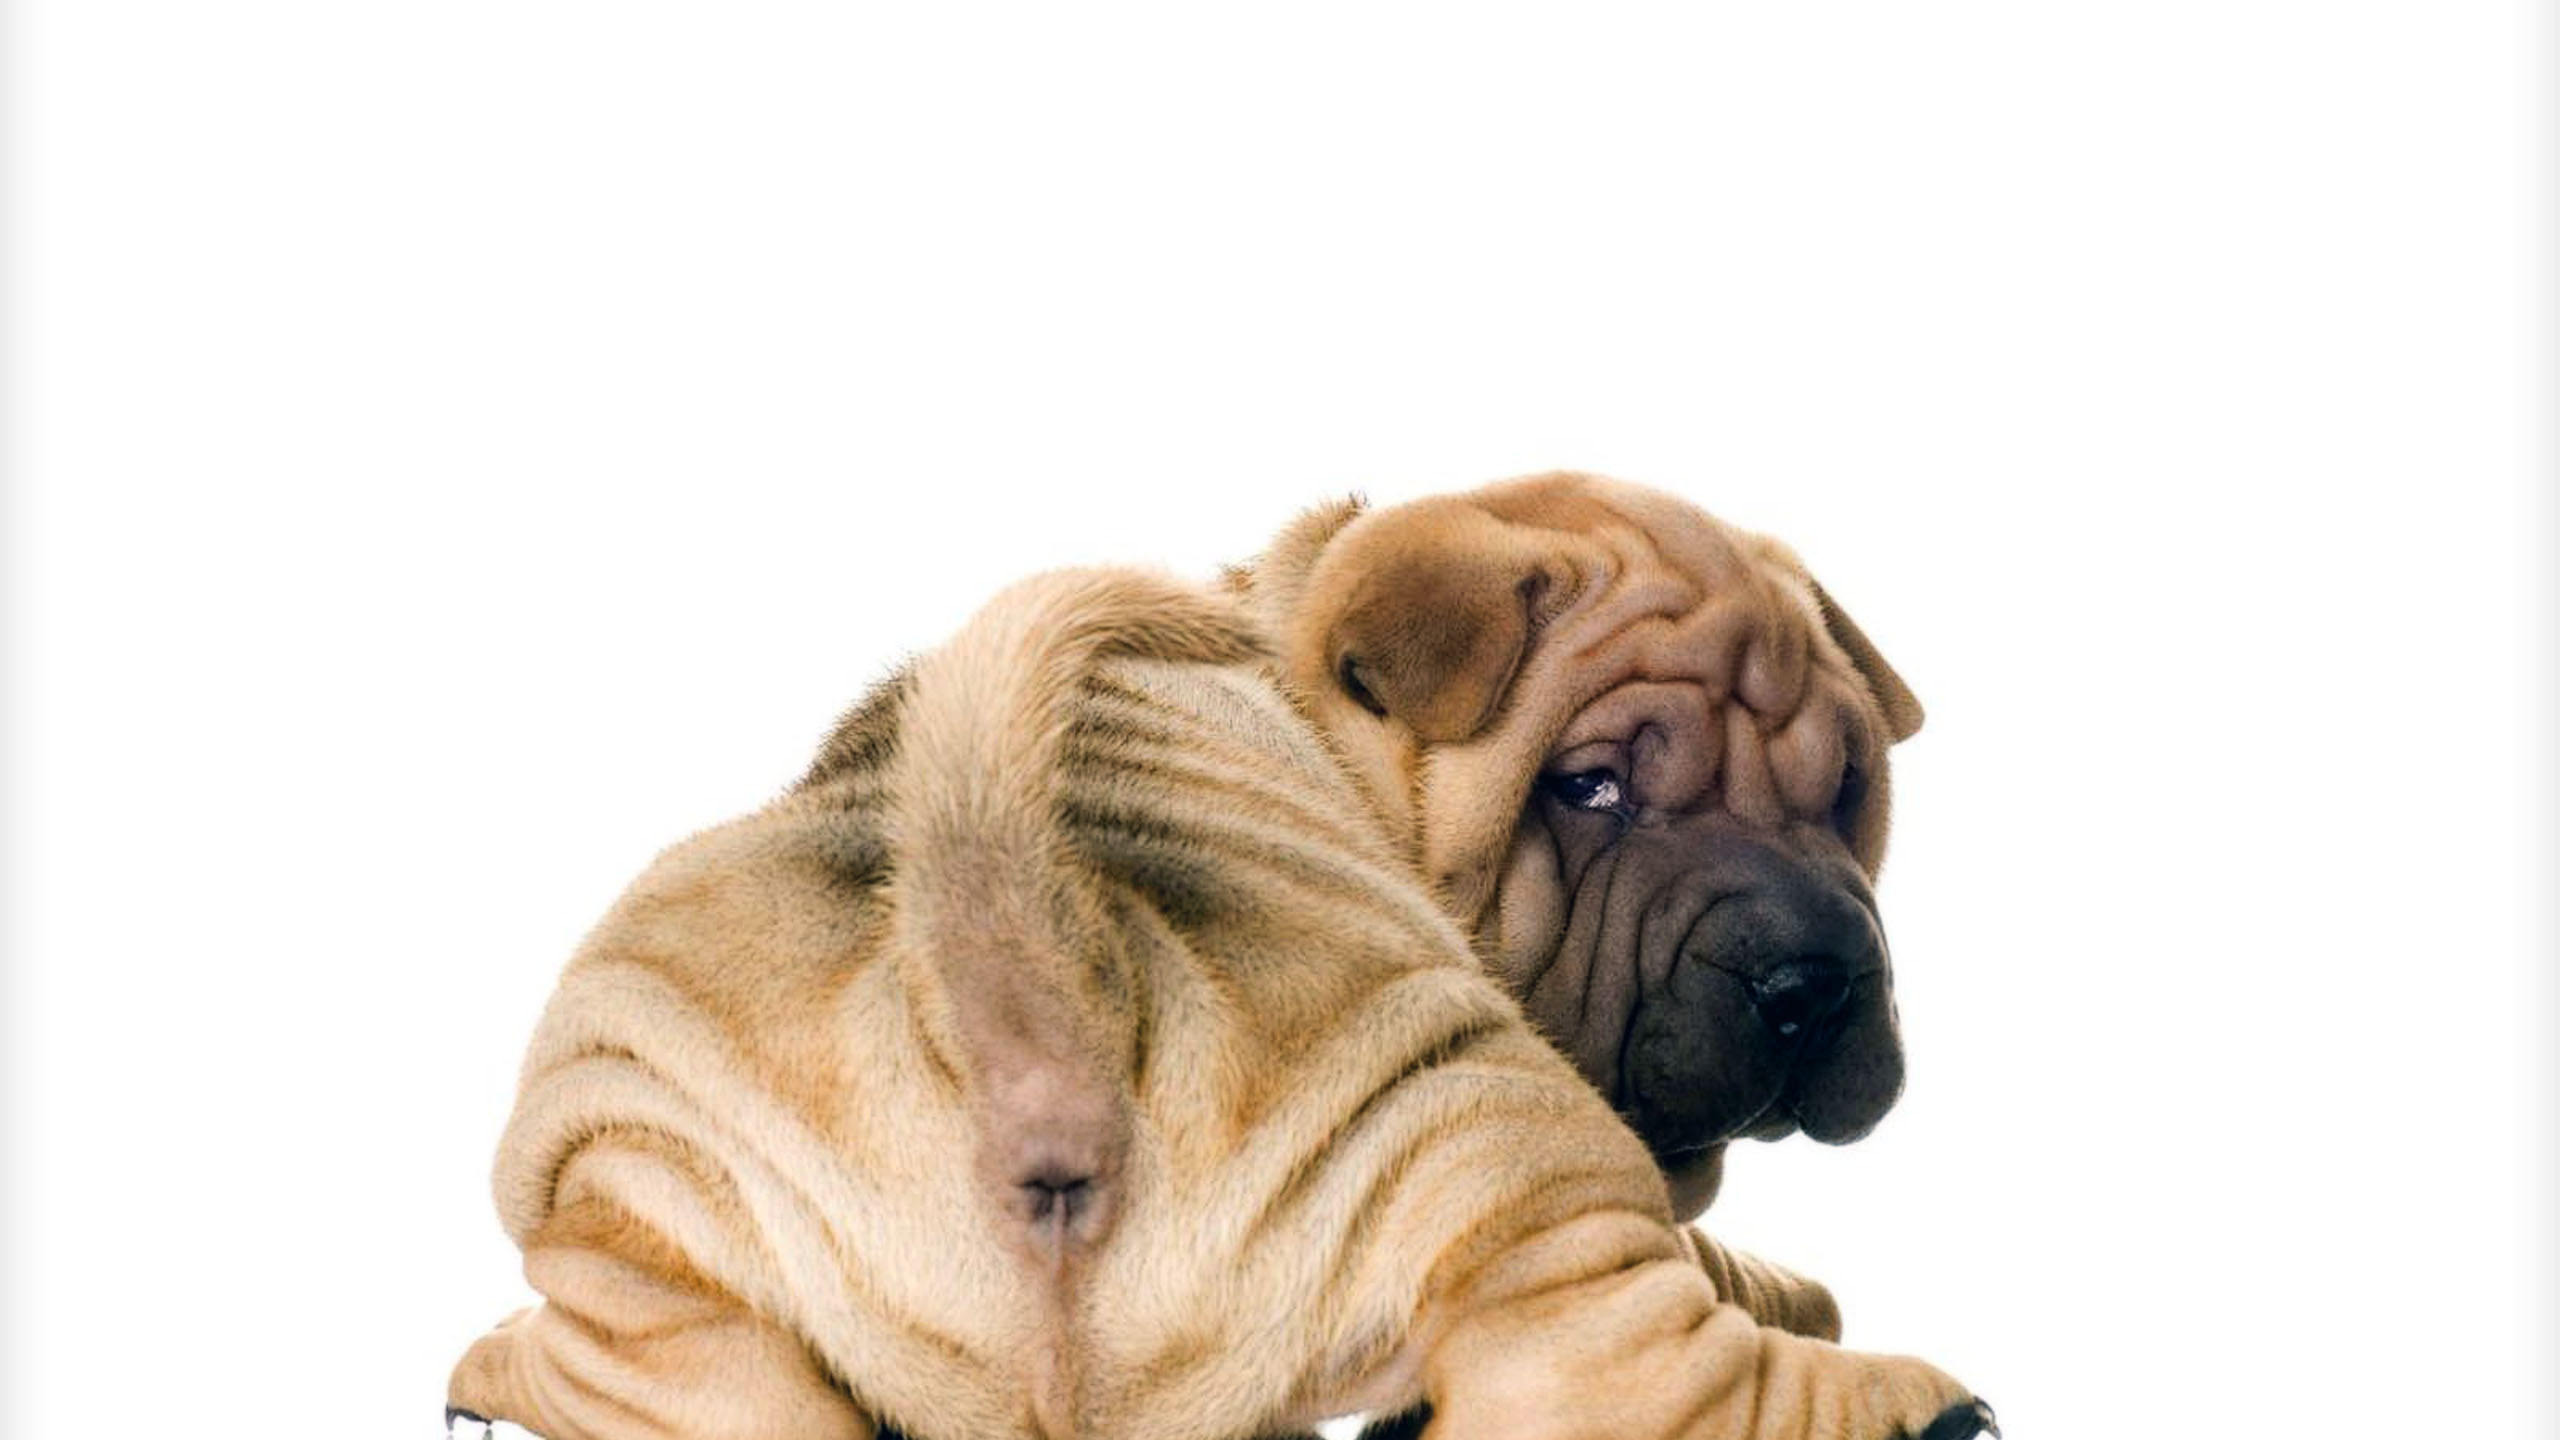 chinese-sharpei-puppy-http-1080-net-chinese-sharpei-puppy-html-wallpaper-wpc5803443